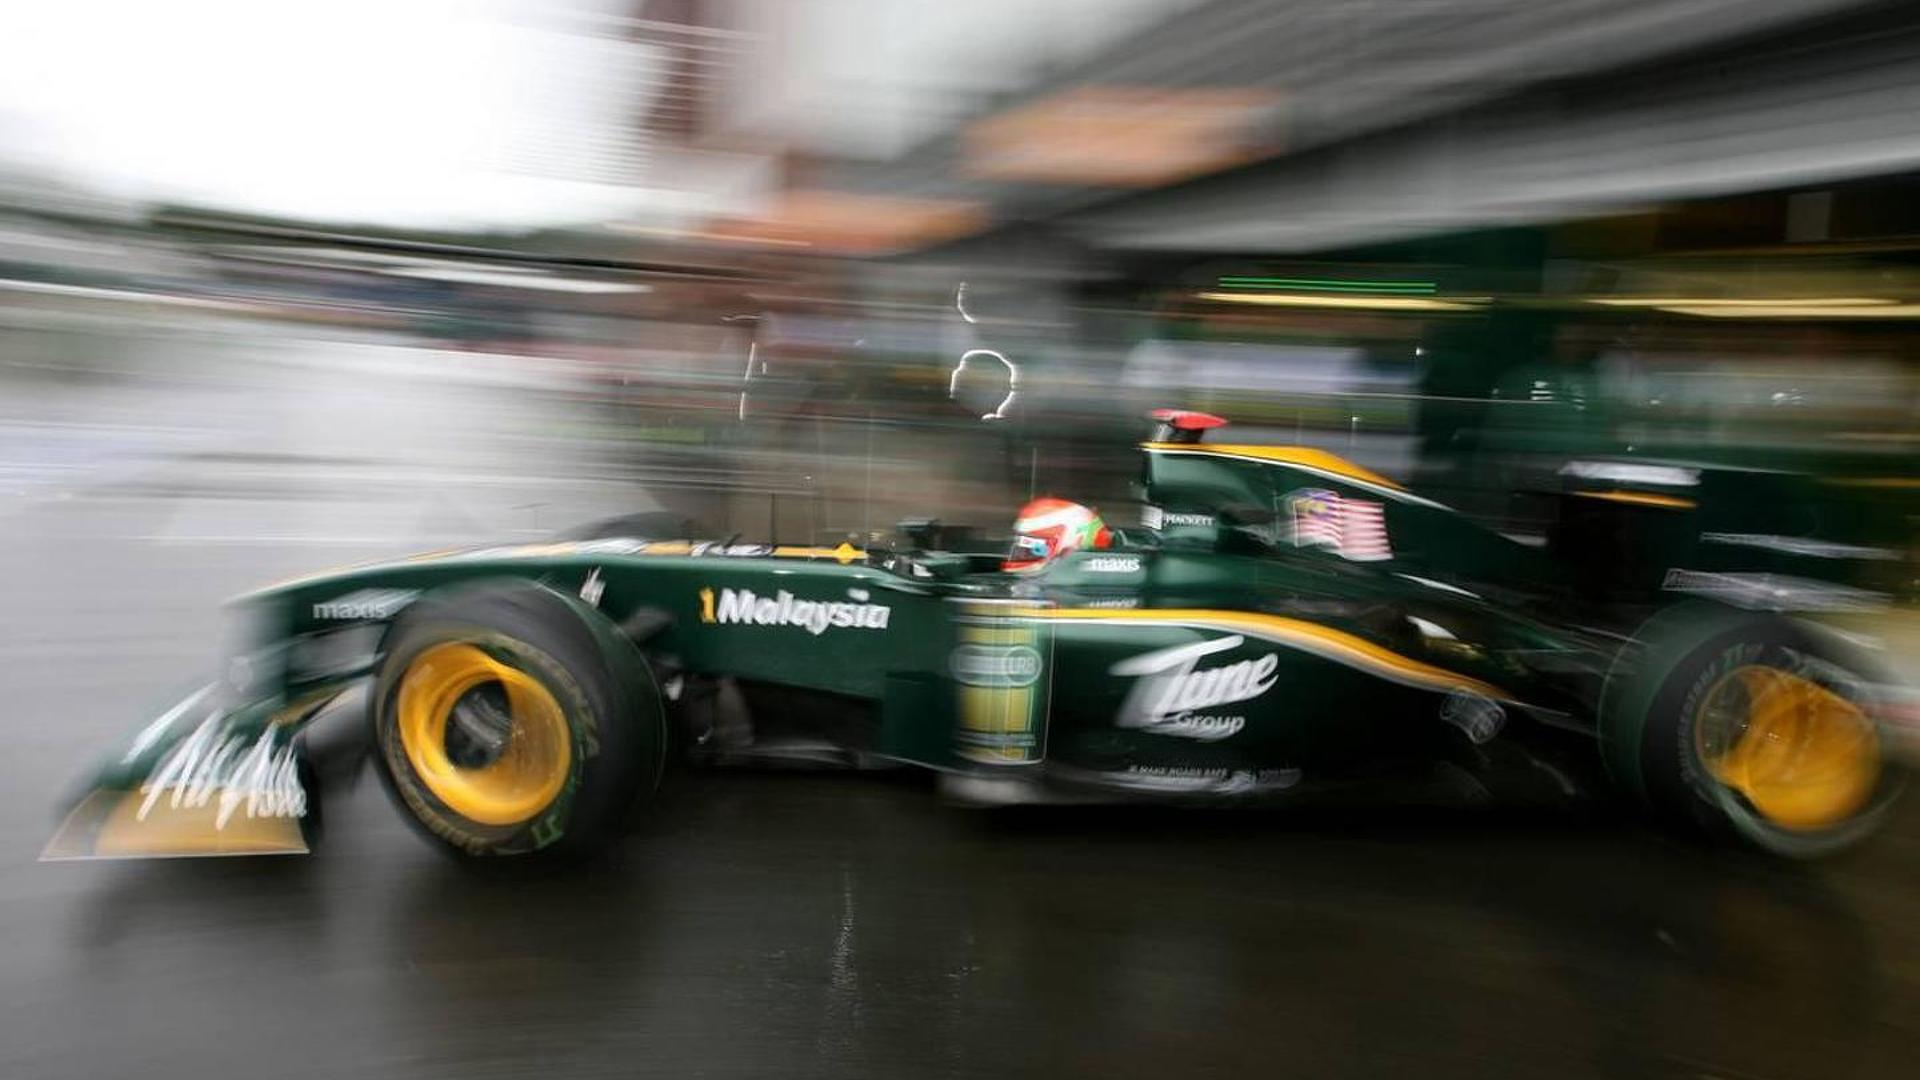 Lotus to use Renault gearbox in 2011 - report